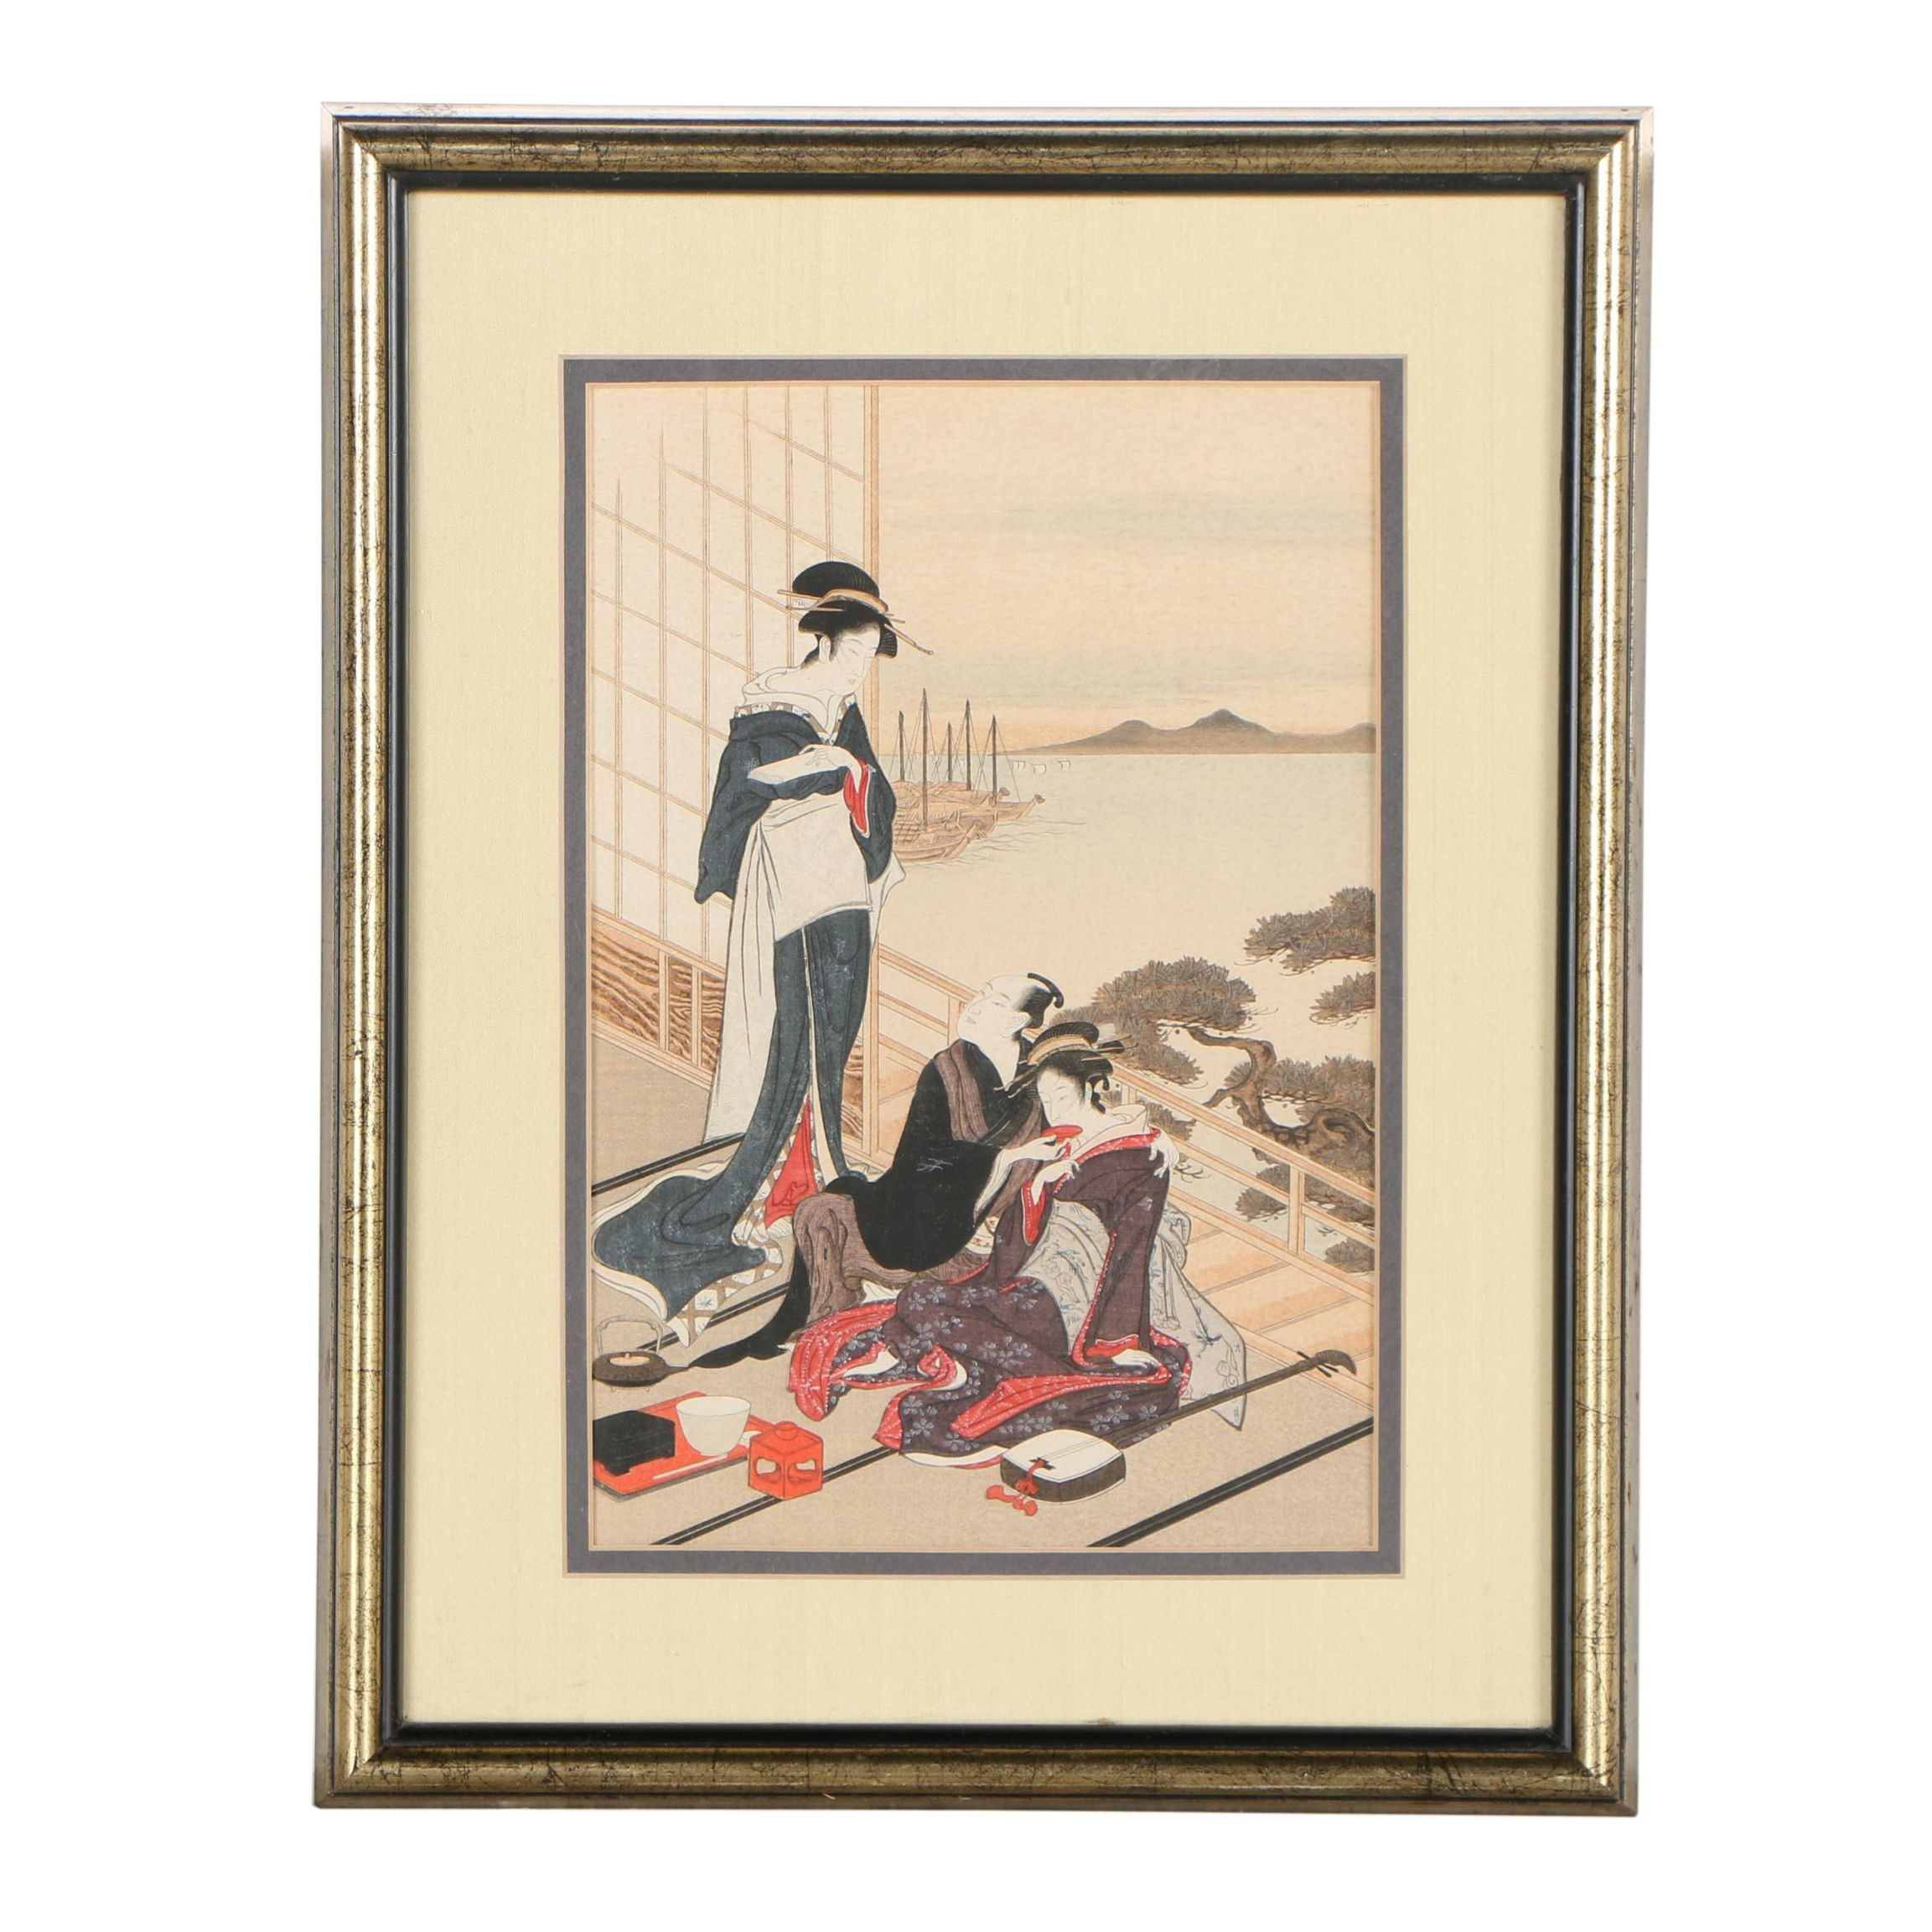 Japanese Woodblock Reprint Attributed to Toyoharu Utagawa